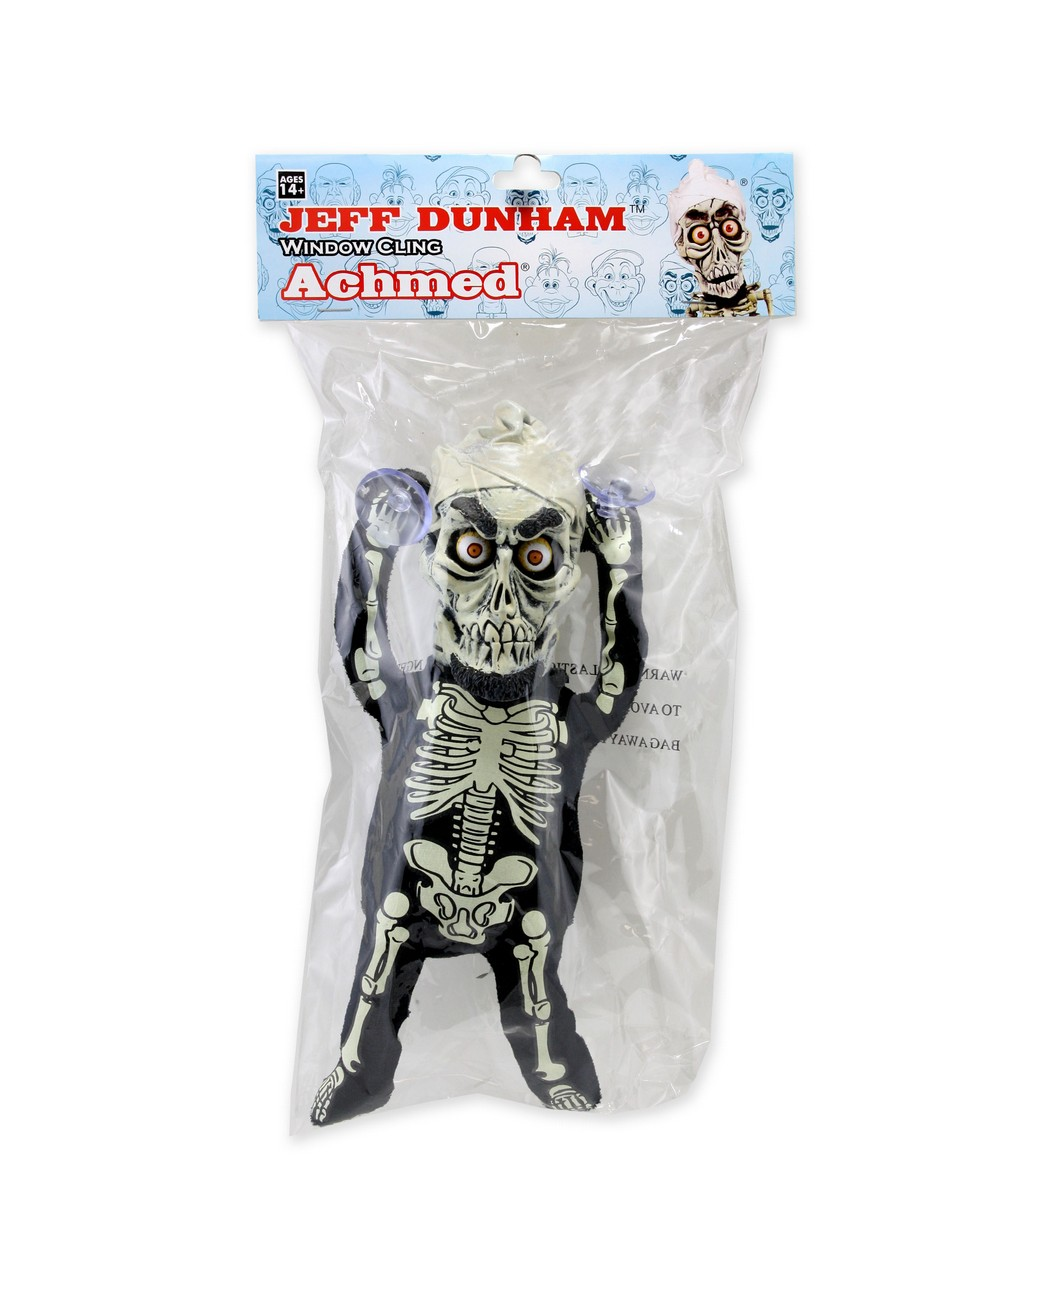 jeff dunham plush window cling achmed. Black Bedroom Furniture Sets. Home Design Ideas